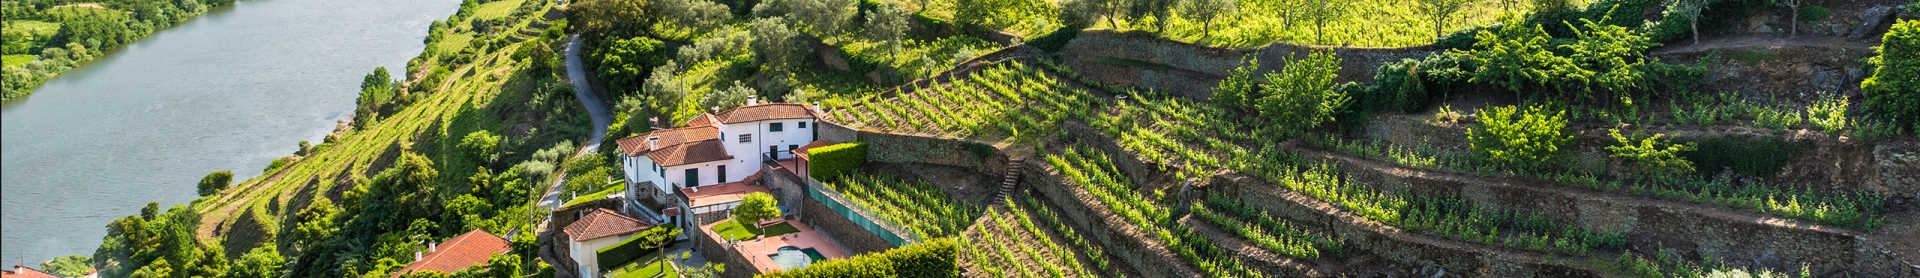 Image for Vinho Verde Wine Portugal content section